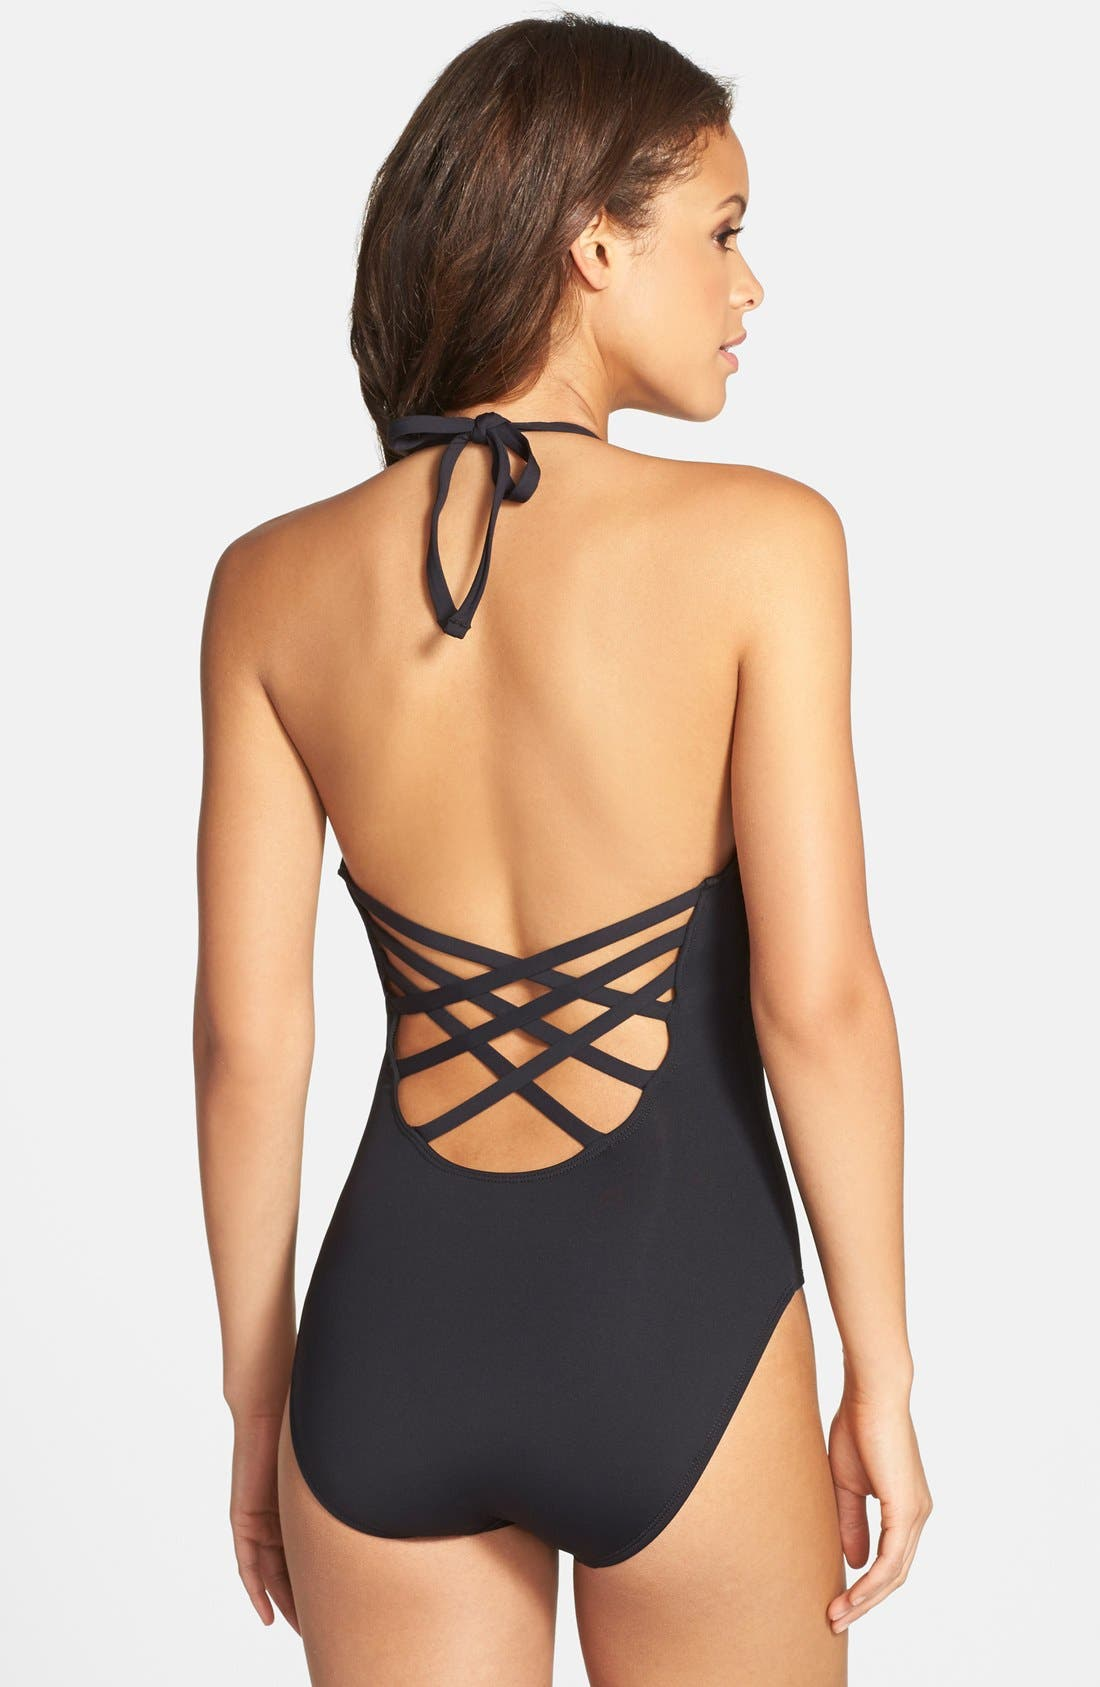 Caged Strap One-Piece Swimsuit,                             Alternate thumbnail 8, color,                             001